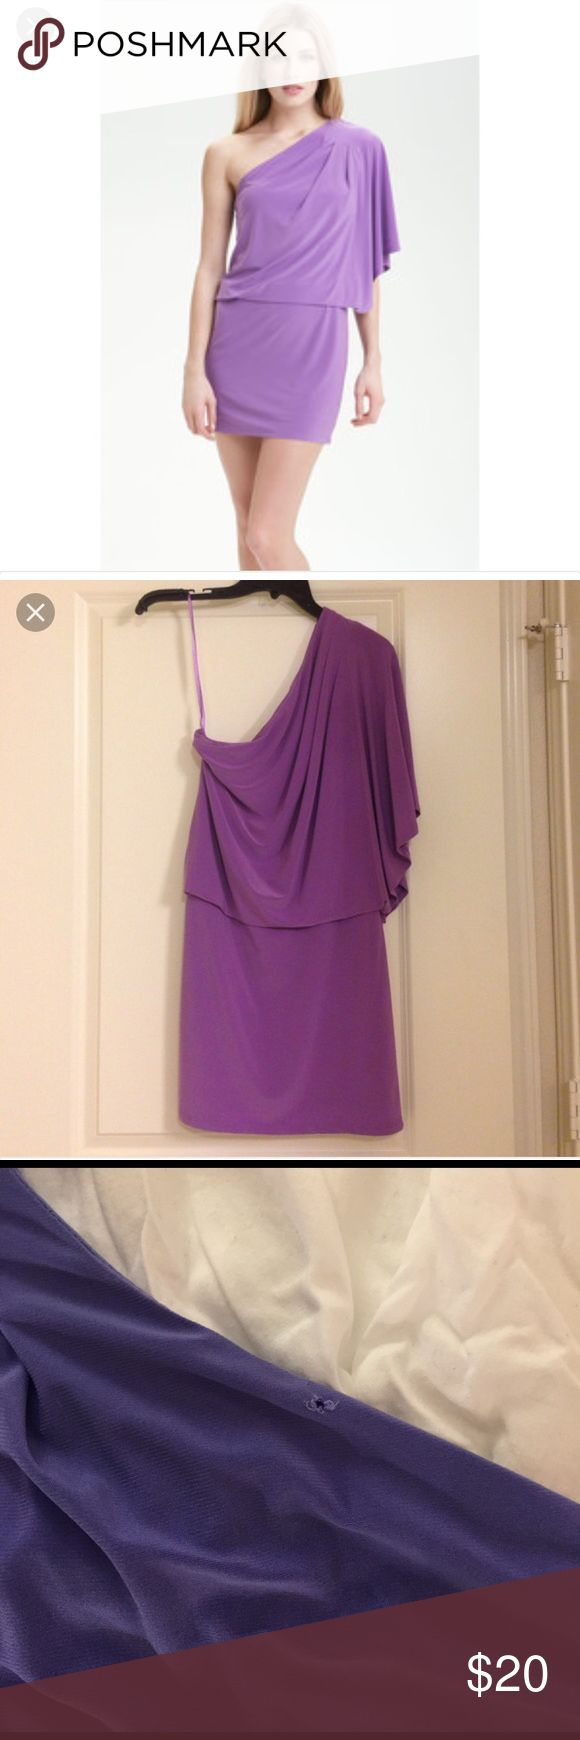 Jessica Simpson purple one shoulder dress Jessica Simpson one shoulder dress, purple with a small hole in the back at the neck. Third picture shows this small defect. Wear your hair down and you won't see. Size small. Cute going out dress. Never worn. Jessica Simpson Dresses Mini